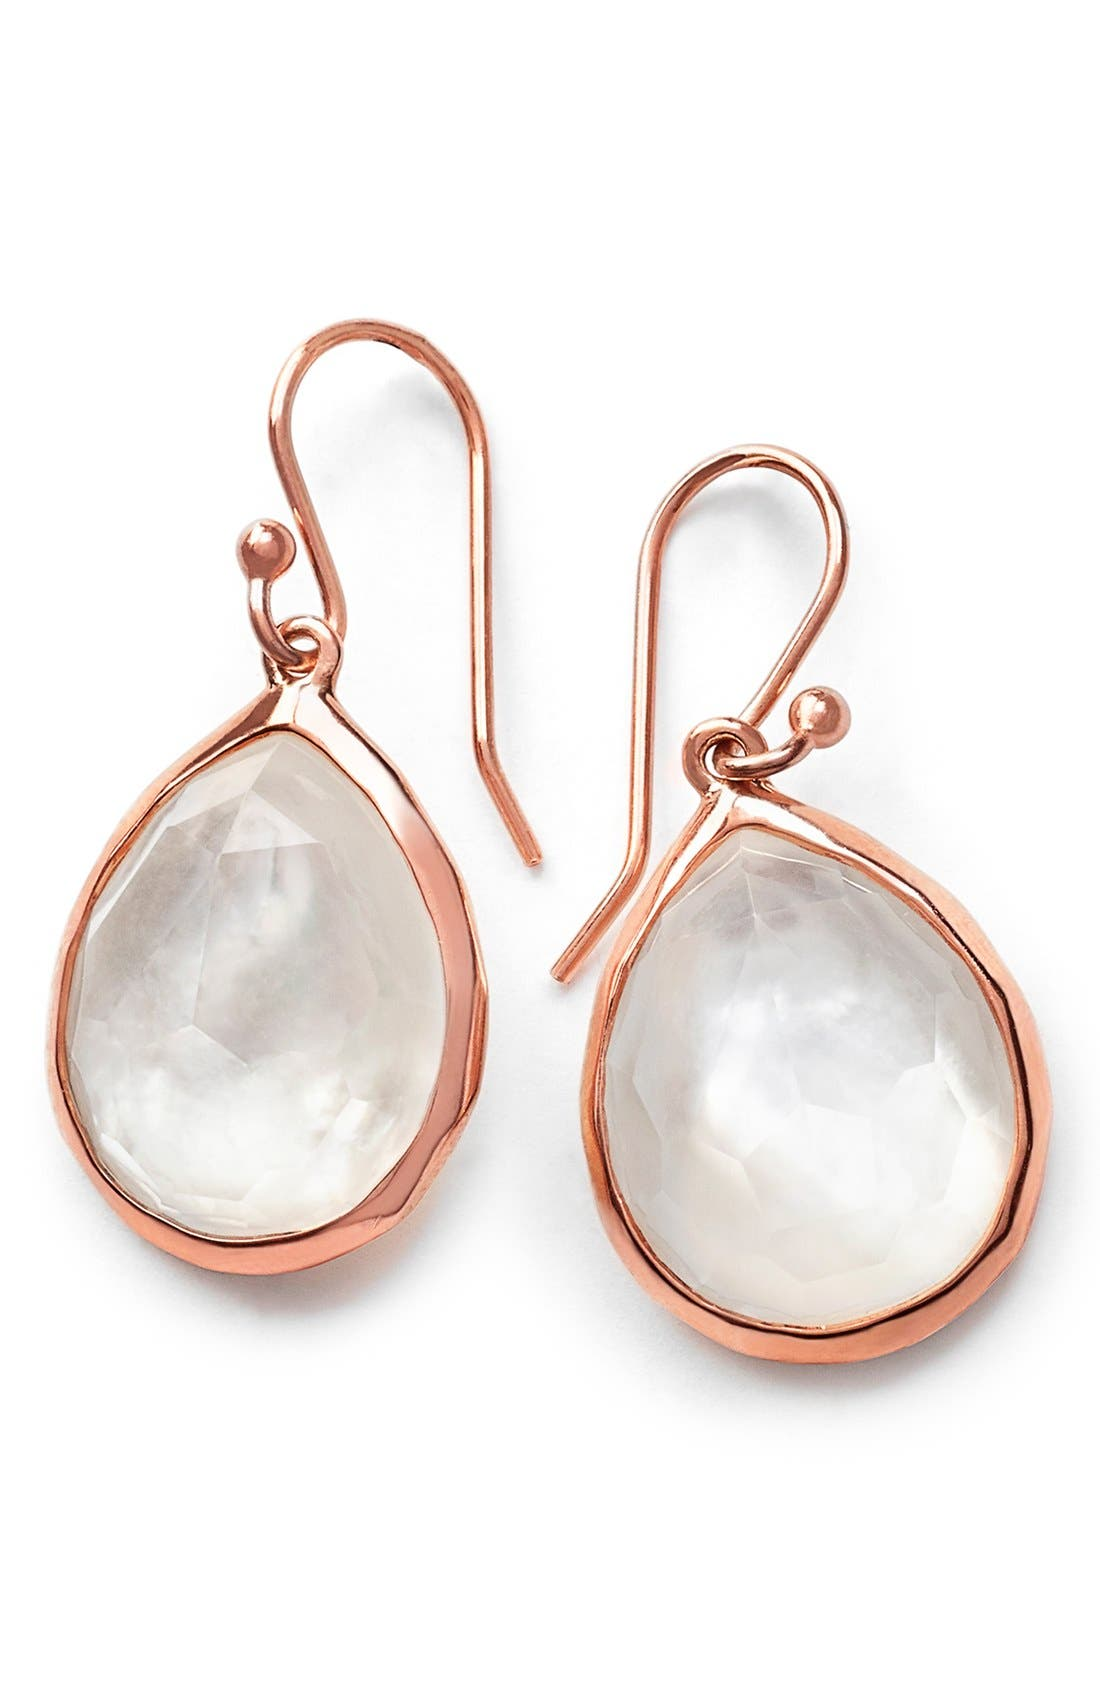 Alternate Image 1 Selected - Ippolita 'Rock Candy' Small Teardrop Earrings (Online Only)